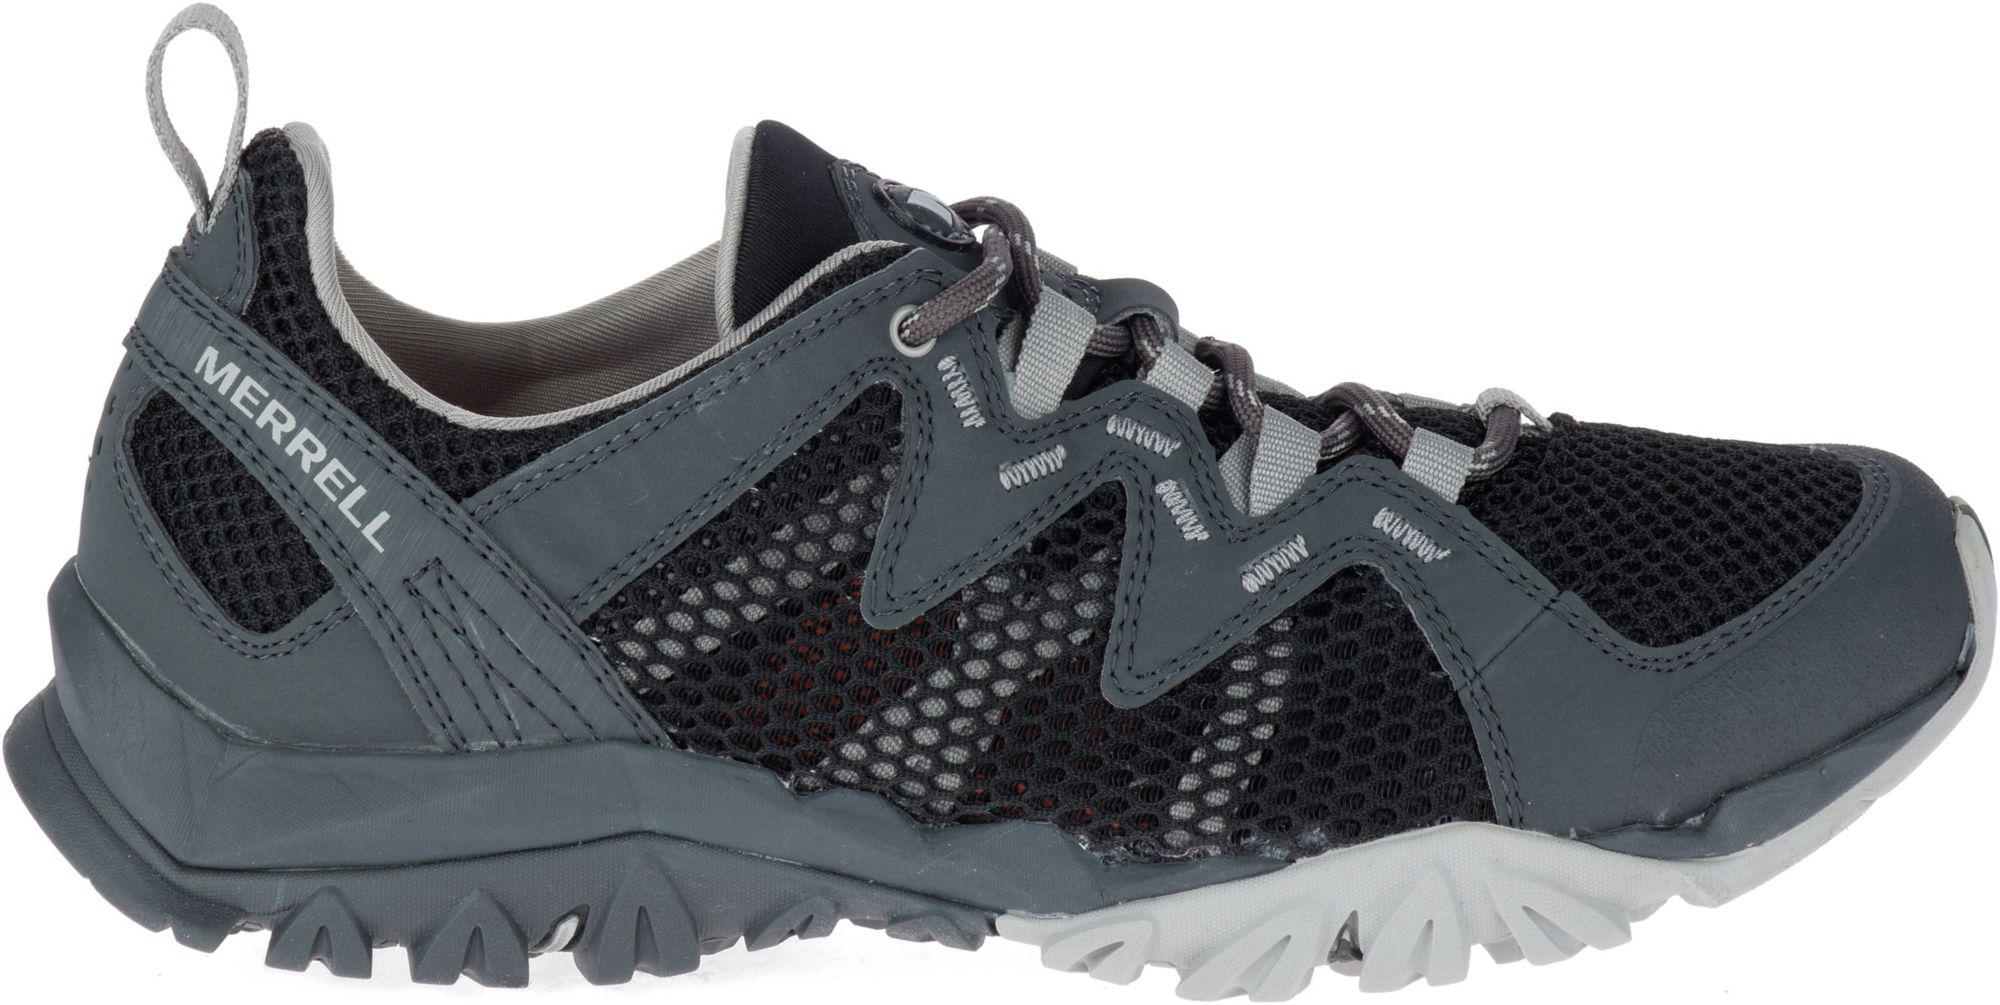 ee162a8a5ab9 Lyst - Merrell Tetrex Rapid Crest Water Shoes in Black